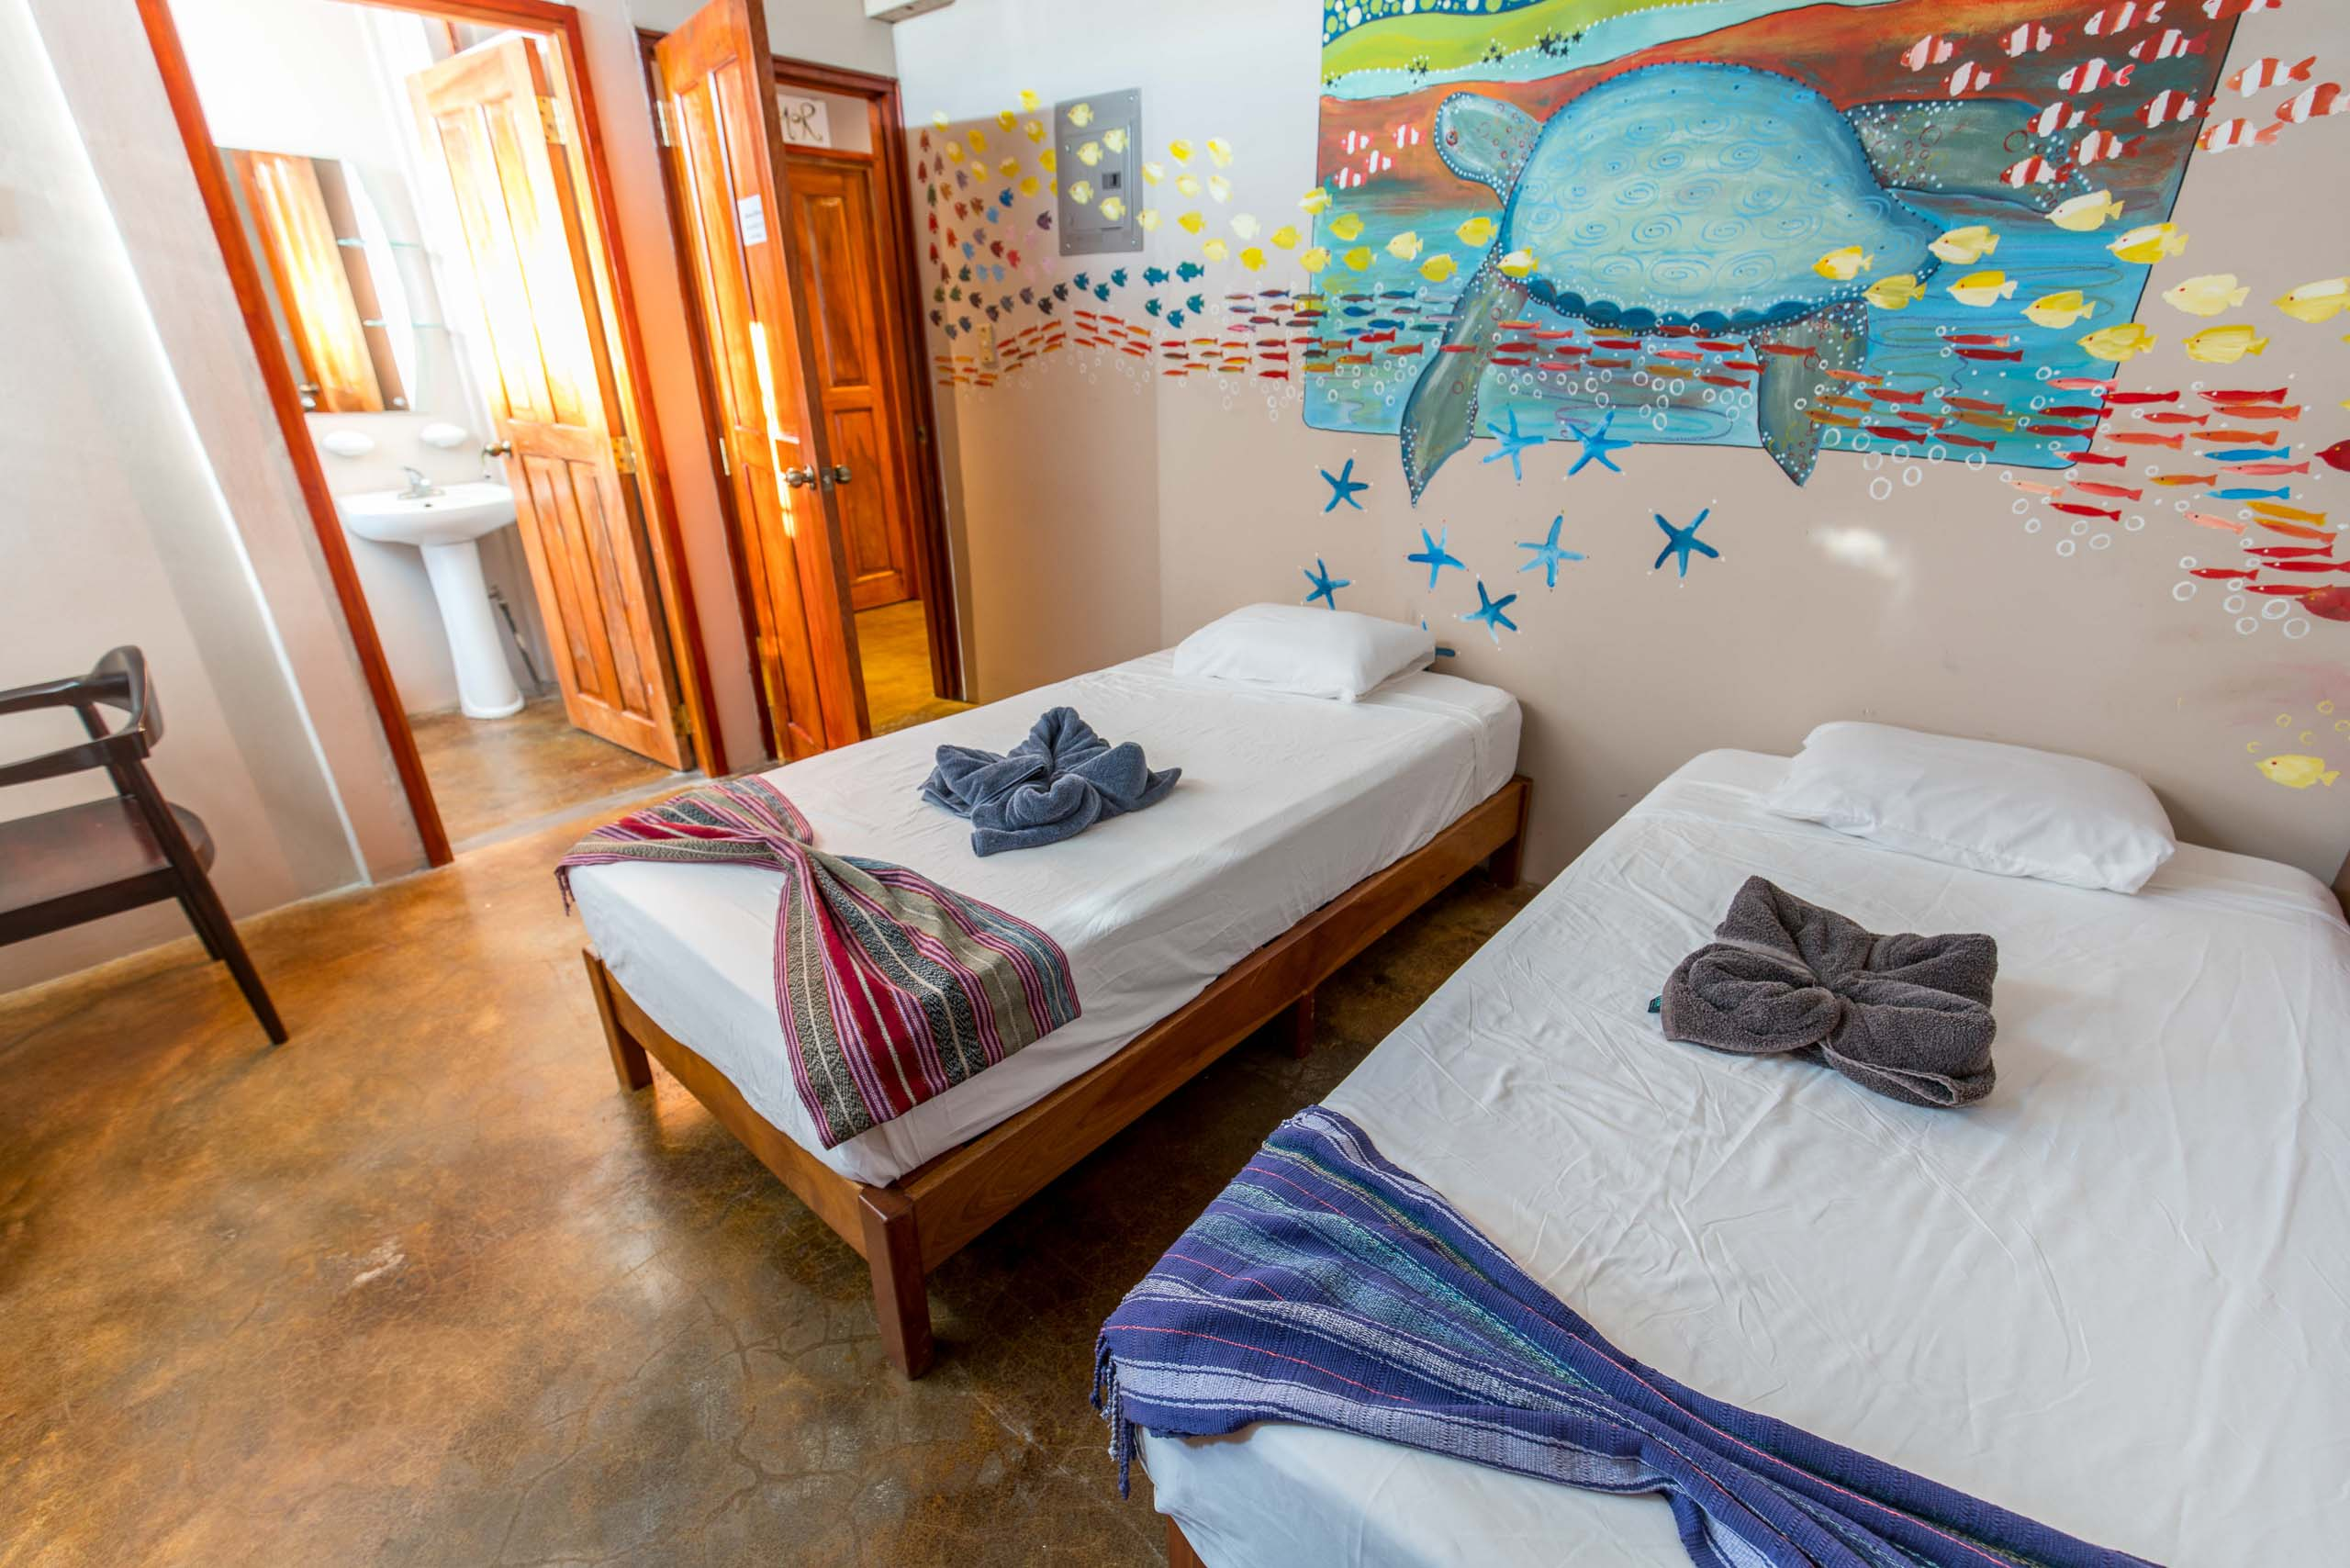 Casa Oro Group Nuestra-Casa-Eco-Guesthouse-San-Juan-Del-Sur-Nicaragua-Tortuga-King-Room-Twin-Beds-Art-Organic-Textile-Responsible-Travel Nuestra Casa